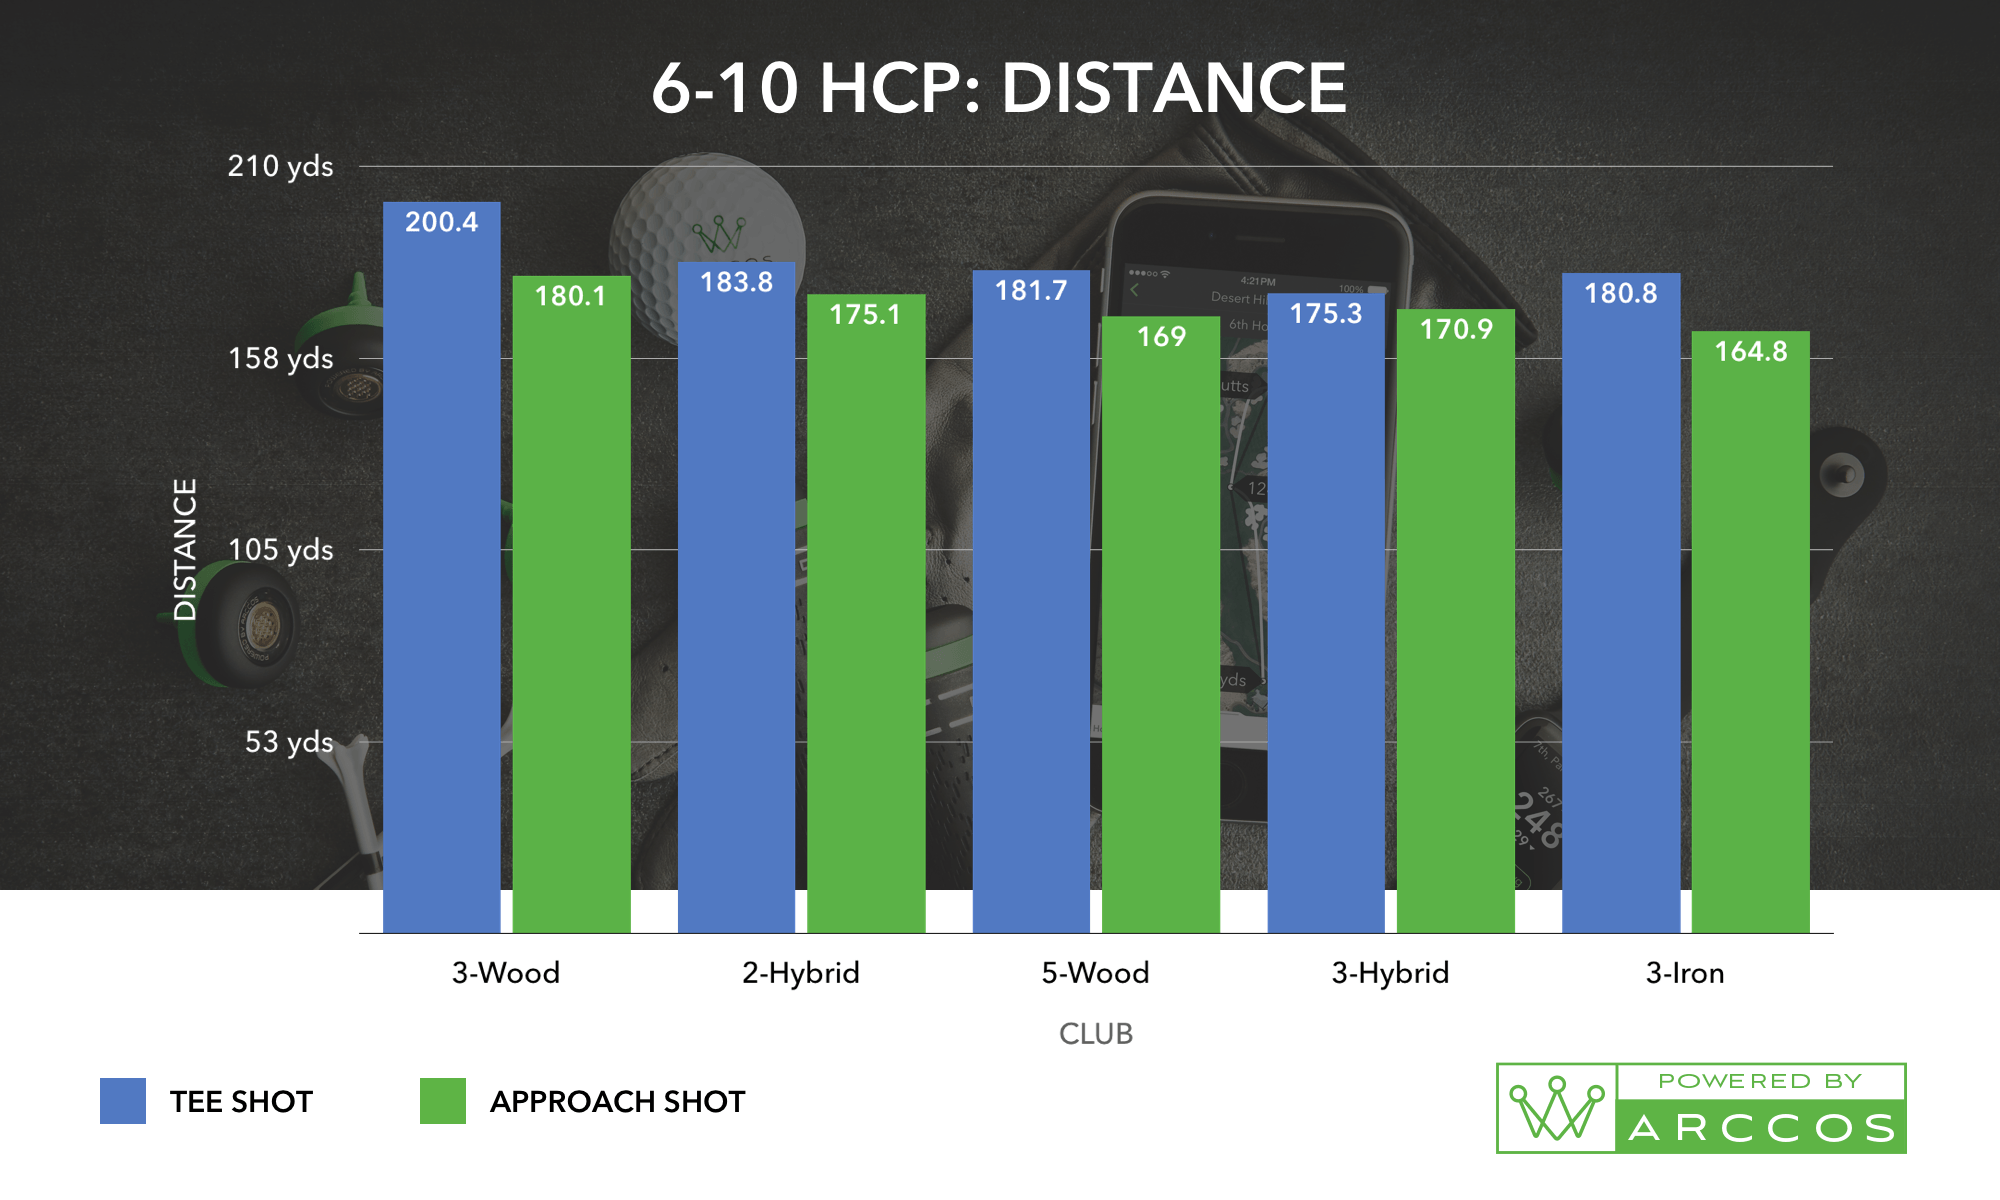 A 6-10 HCP: Distance, the helps prove the best combo of golf irons for you